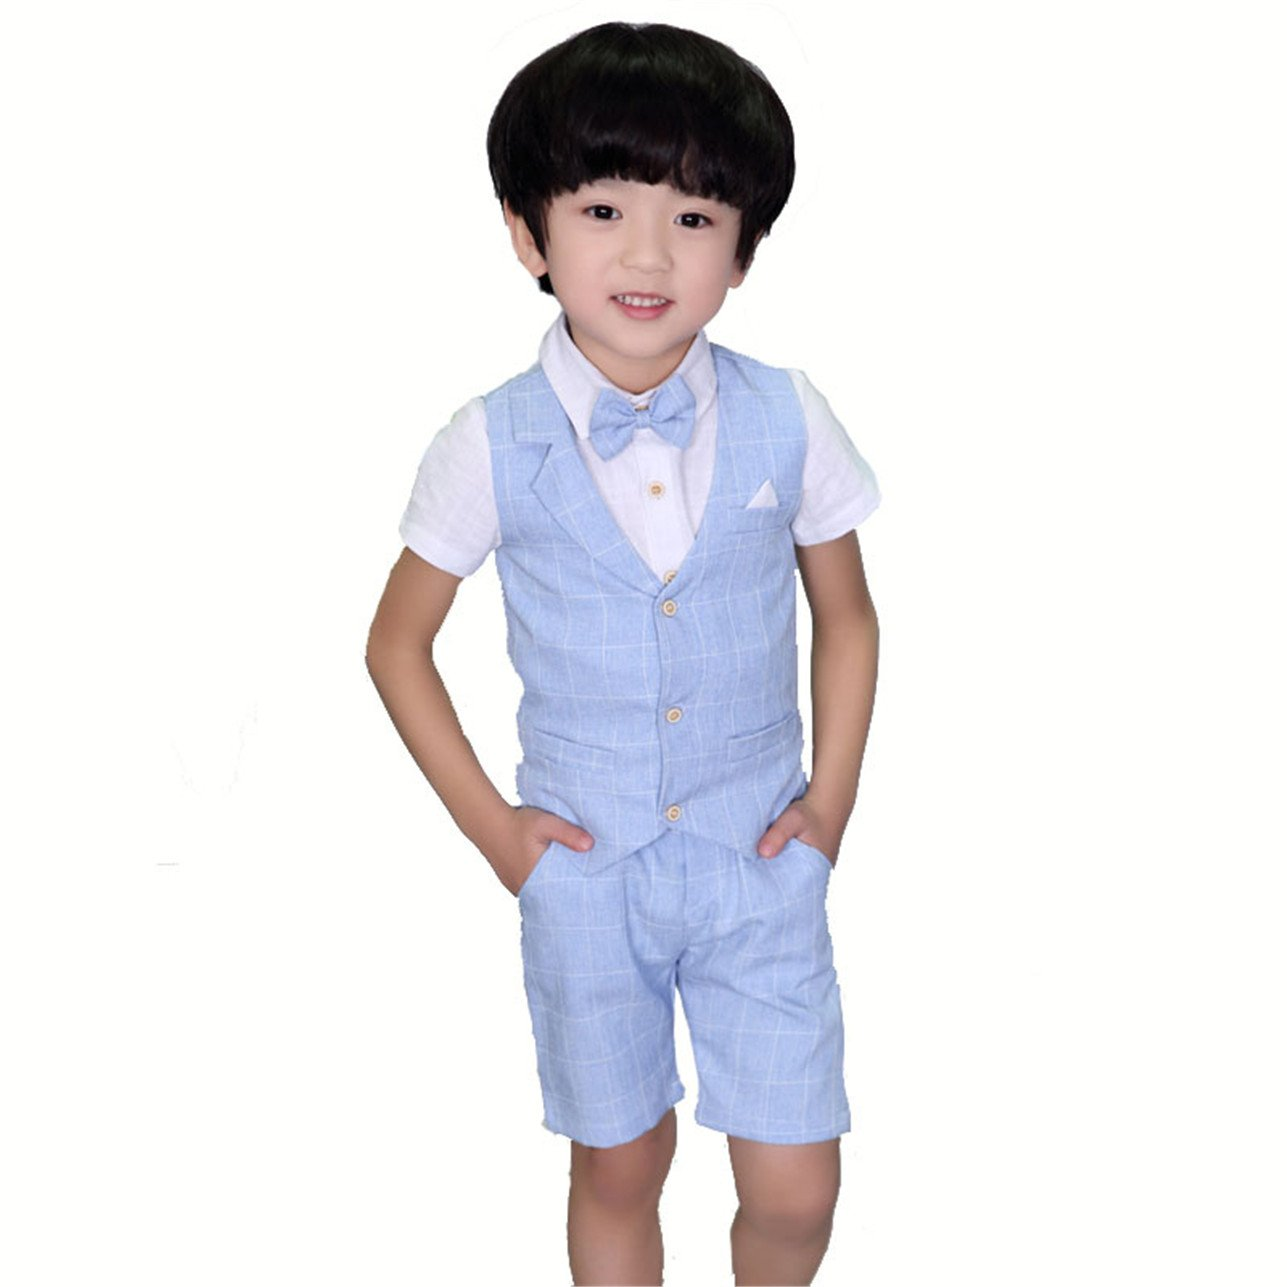 HZMY Boy's Leisure Summer Suit 4 Pieces Shirt,Vest Shorts (8, Blue)